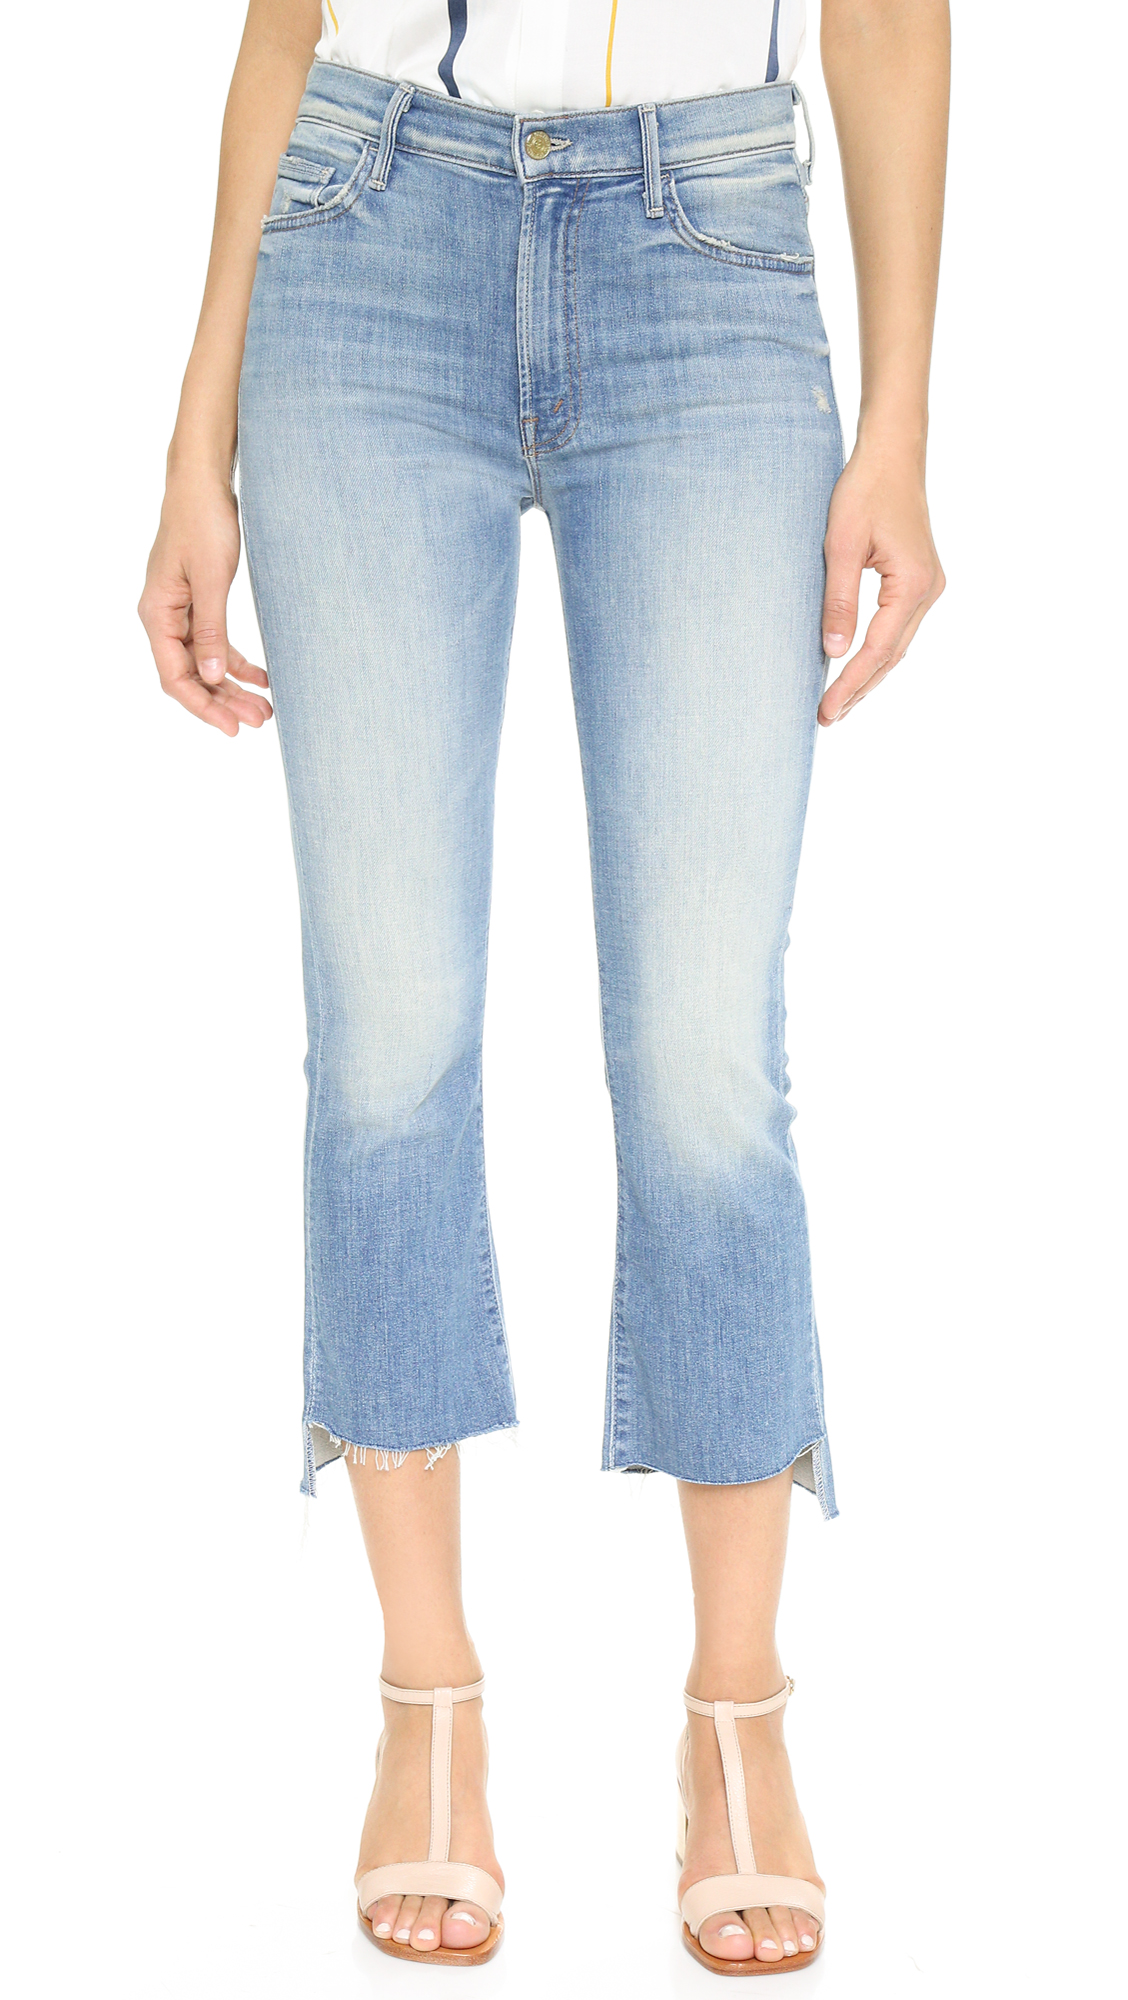 Flared MOTHER jeans with cropped, raw edge cuffs. A dirtied wash and heavy fading lends vintage appeal. 5 pocket styling. Single button closure and zip fly. Fabric: Stretch denim. 93% cotton/6% polyester/1% elastane. Wash cold. Made in the